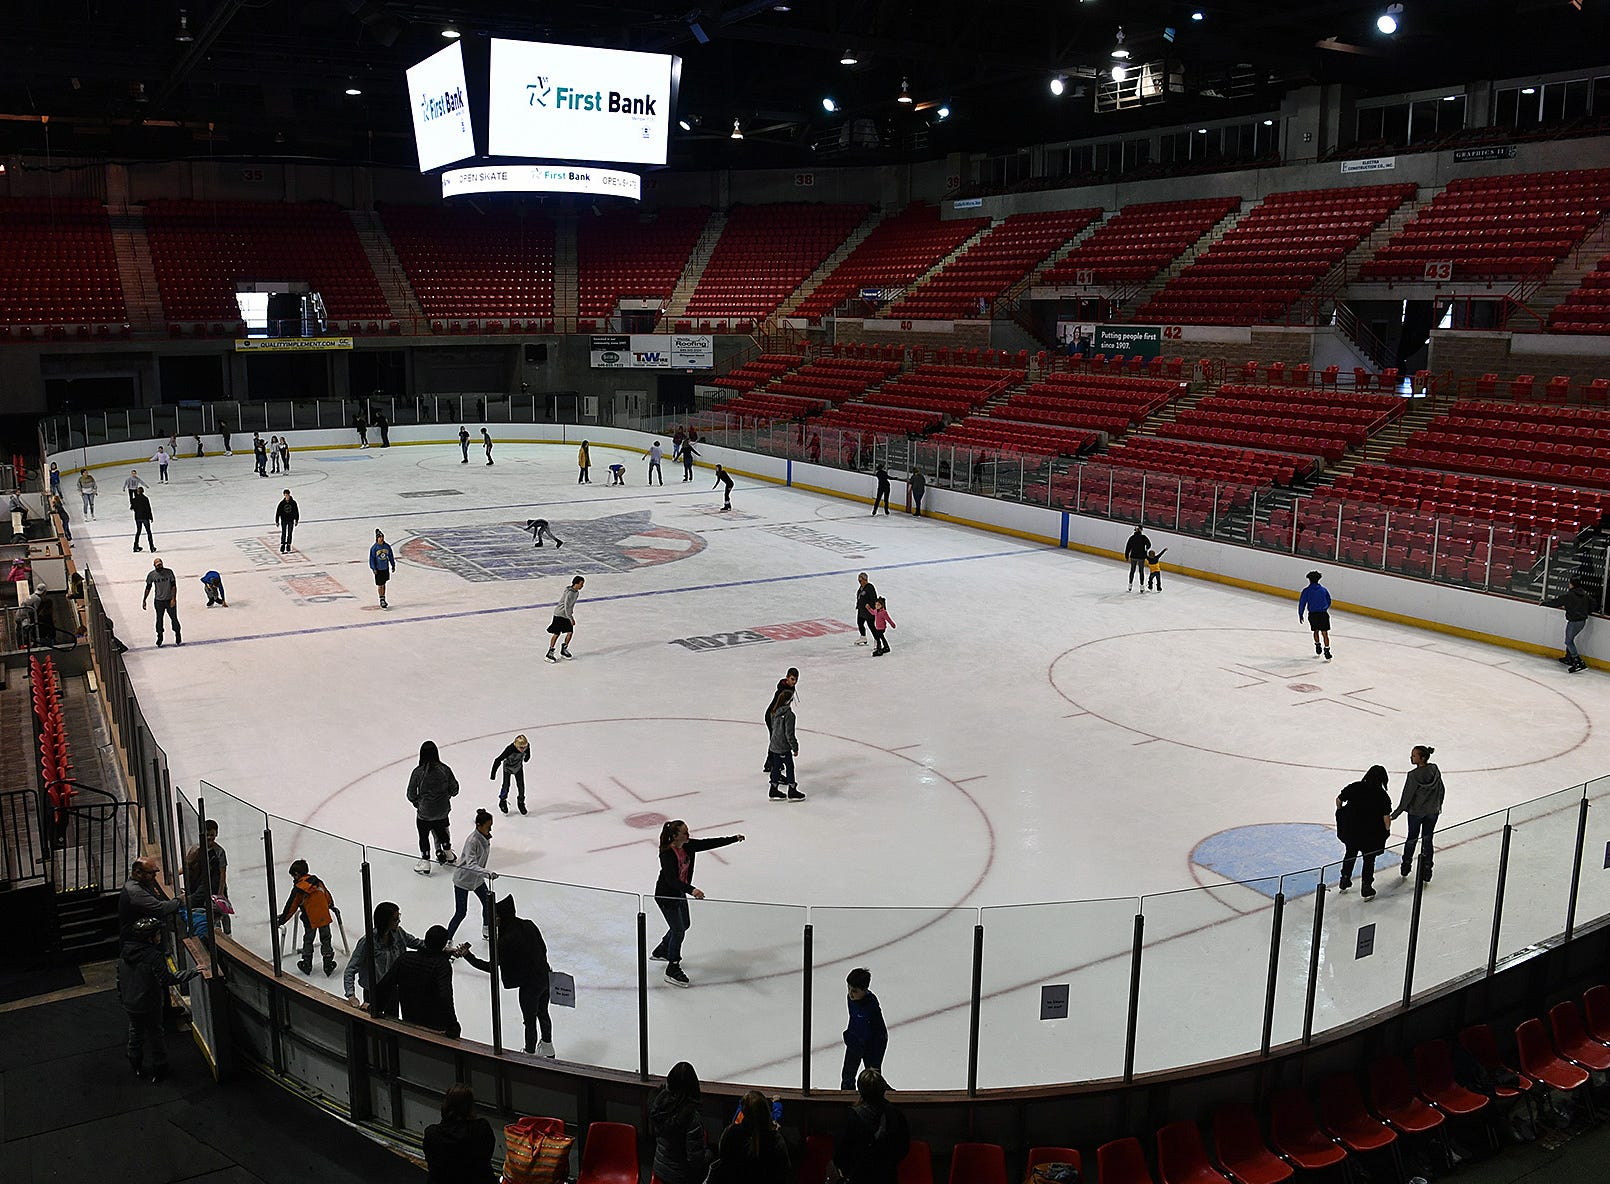 The Kay Yeager Coliseum hosted an Open Skate event Friday sponsored by First Bank. This was the last ice skating event of the season.